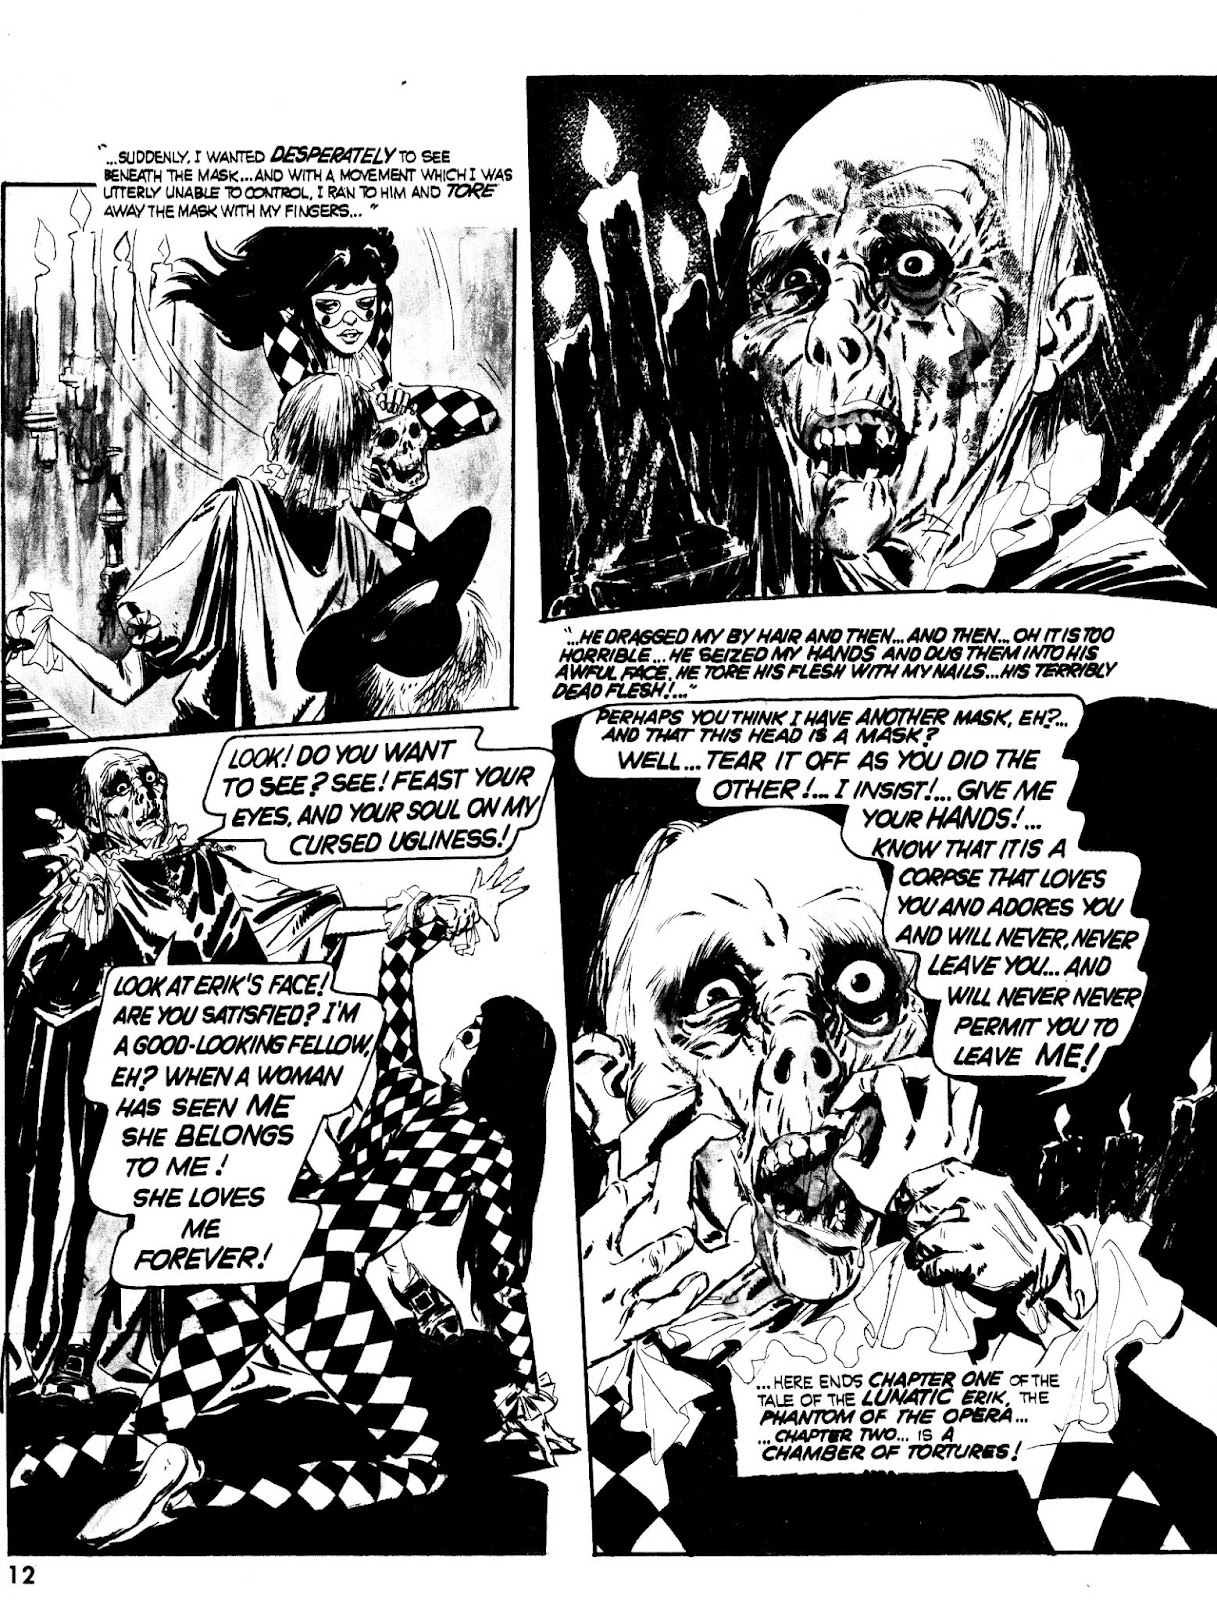 Scream (1973) issue 3 - Page 12